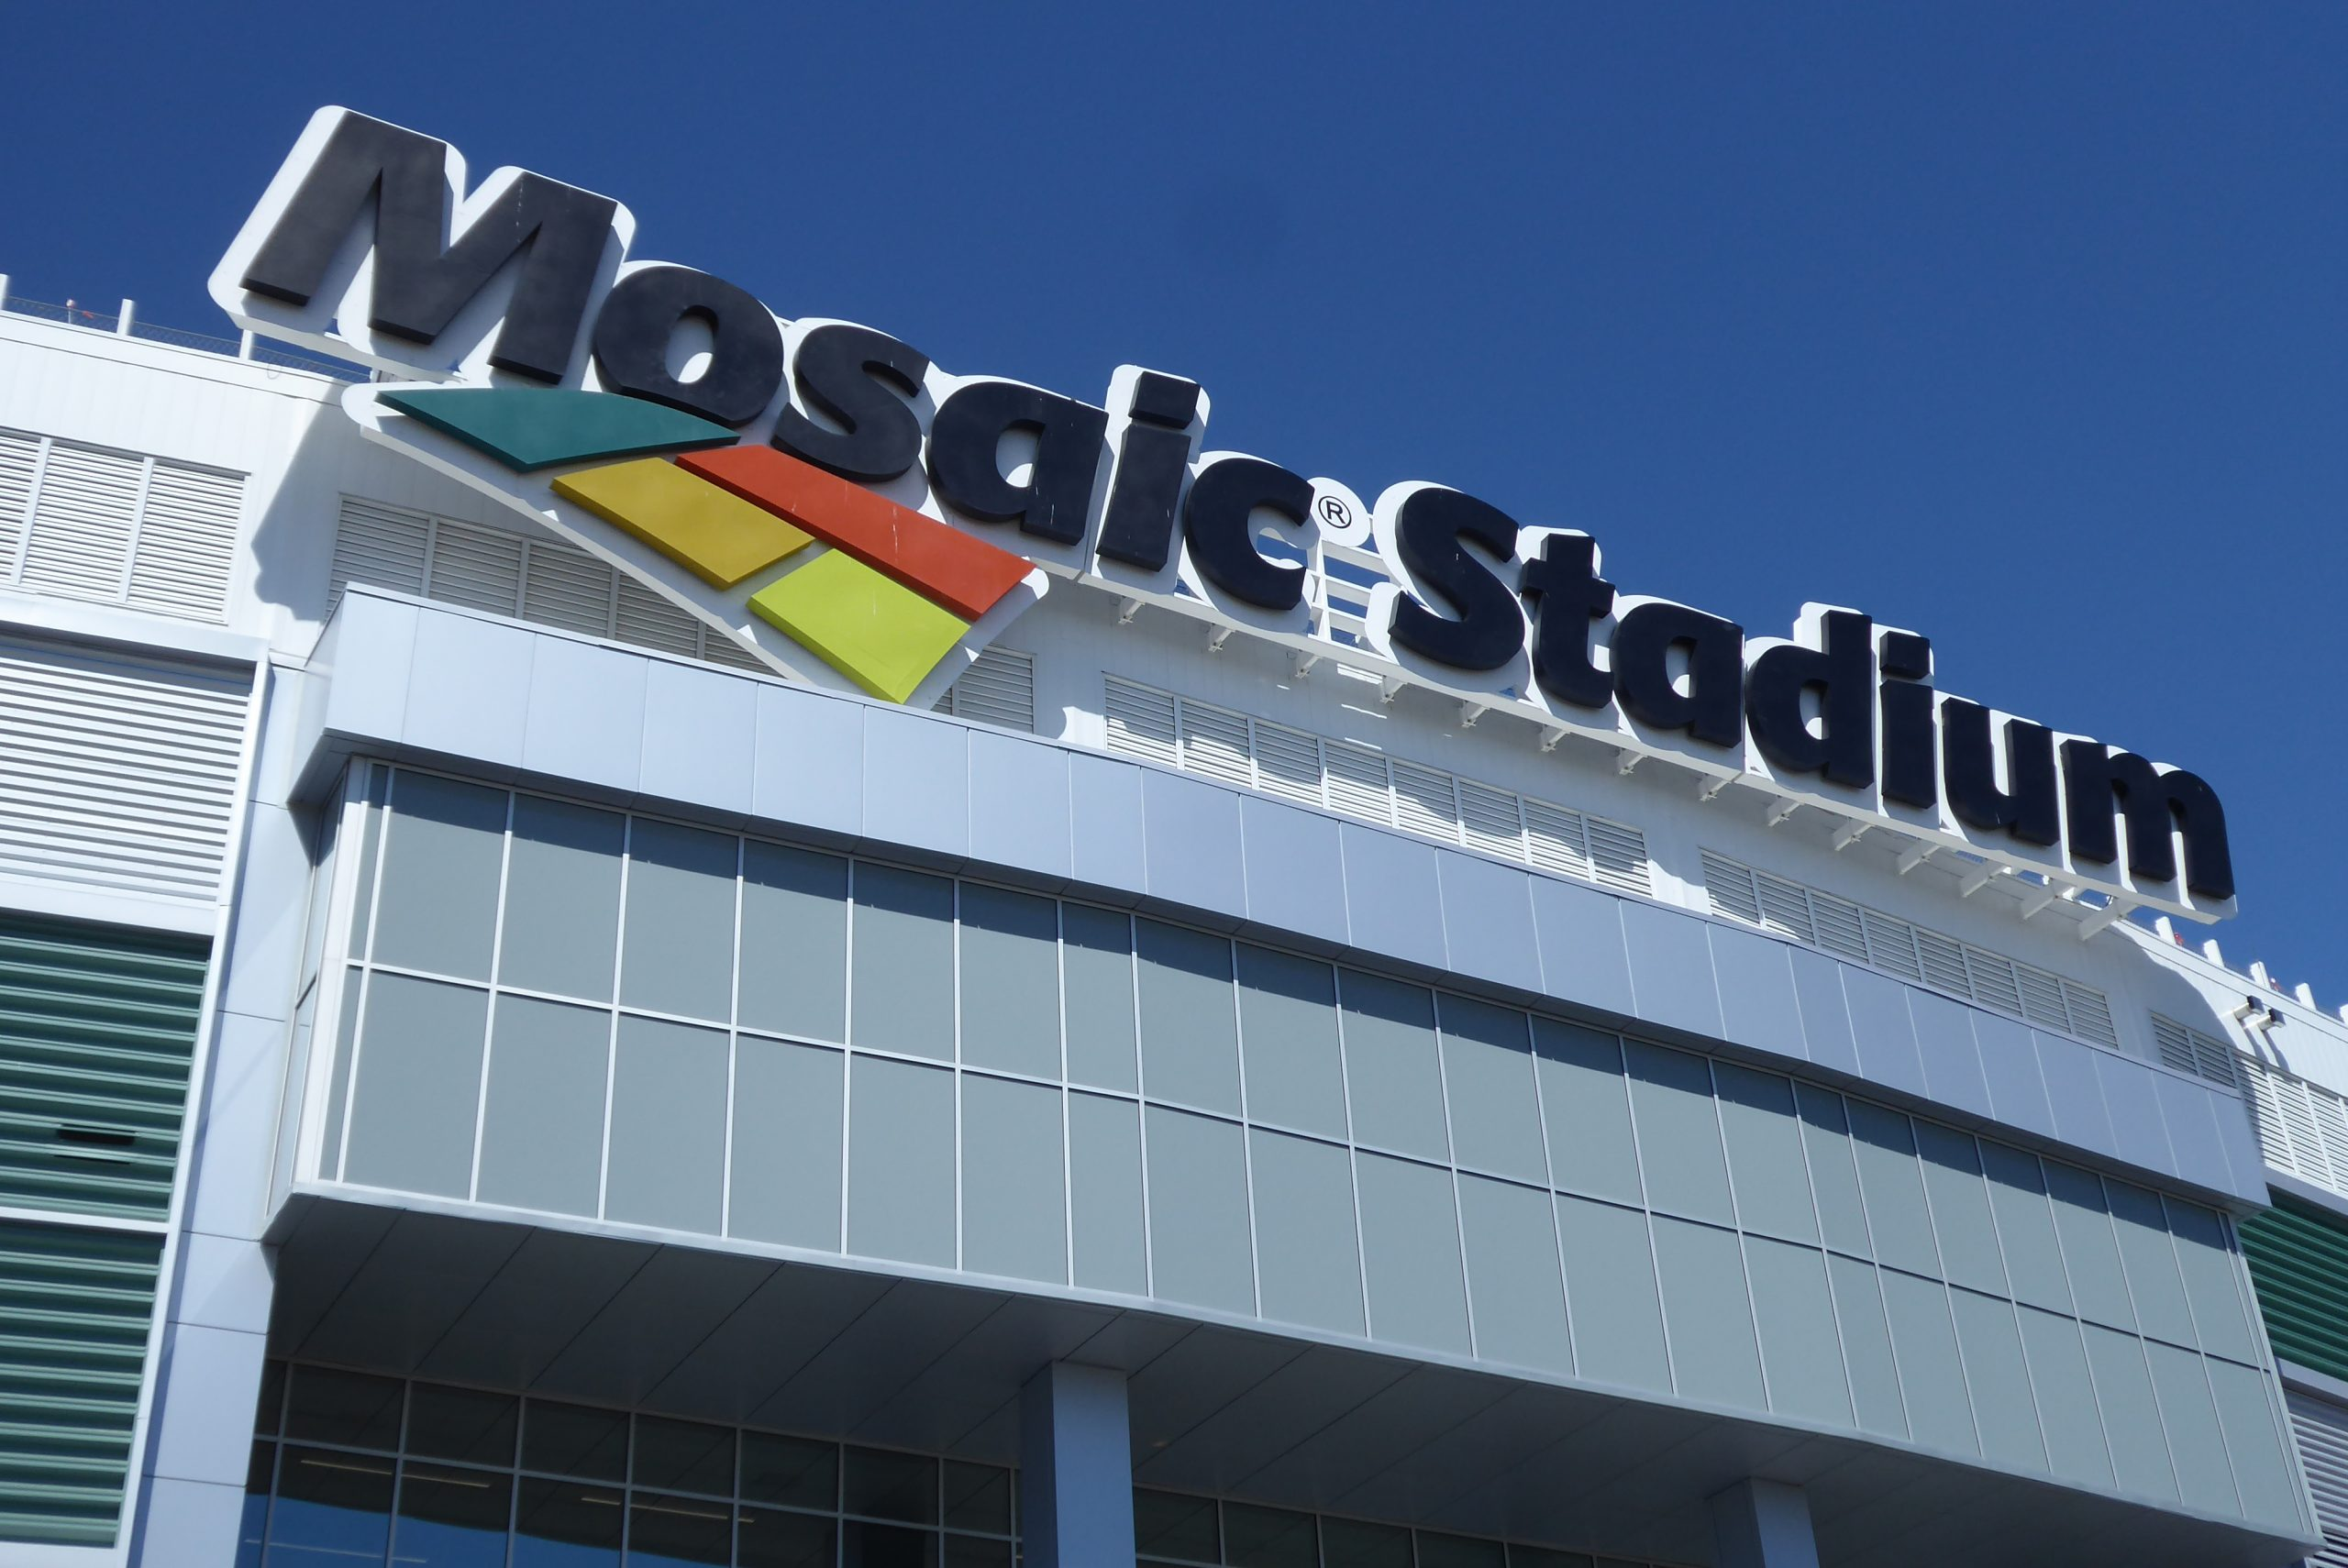 Repairs to Mosaic Stadium after high-pressure water leak